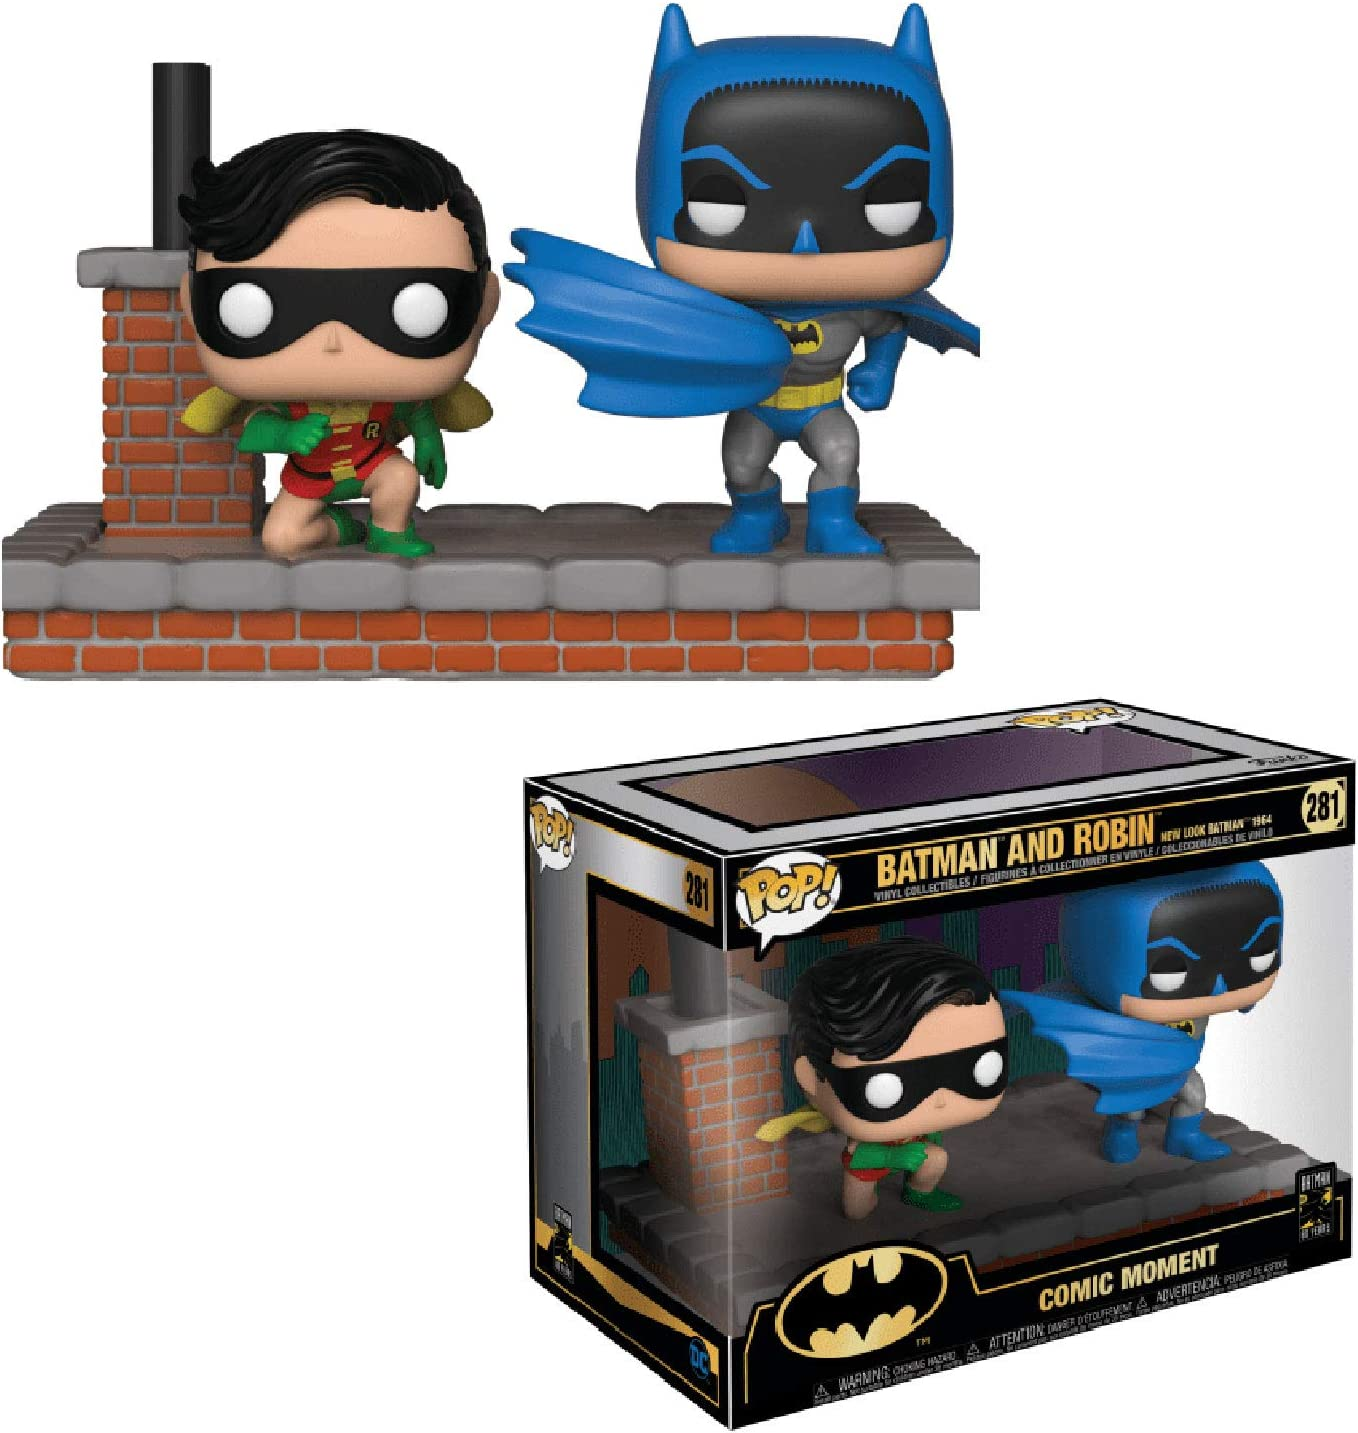 Funko- Pop Vinyl: Comic Moment 80th: Look Batman and Robin (1964) Batman & Robin Figura de Vinilo, Multicolor (37256)